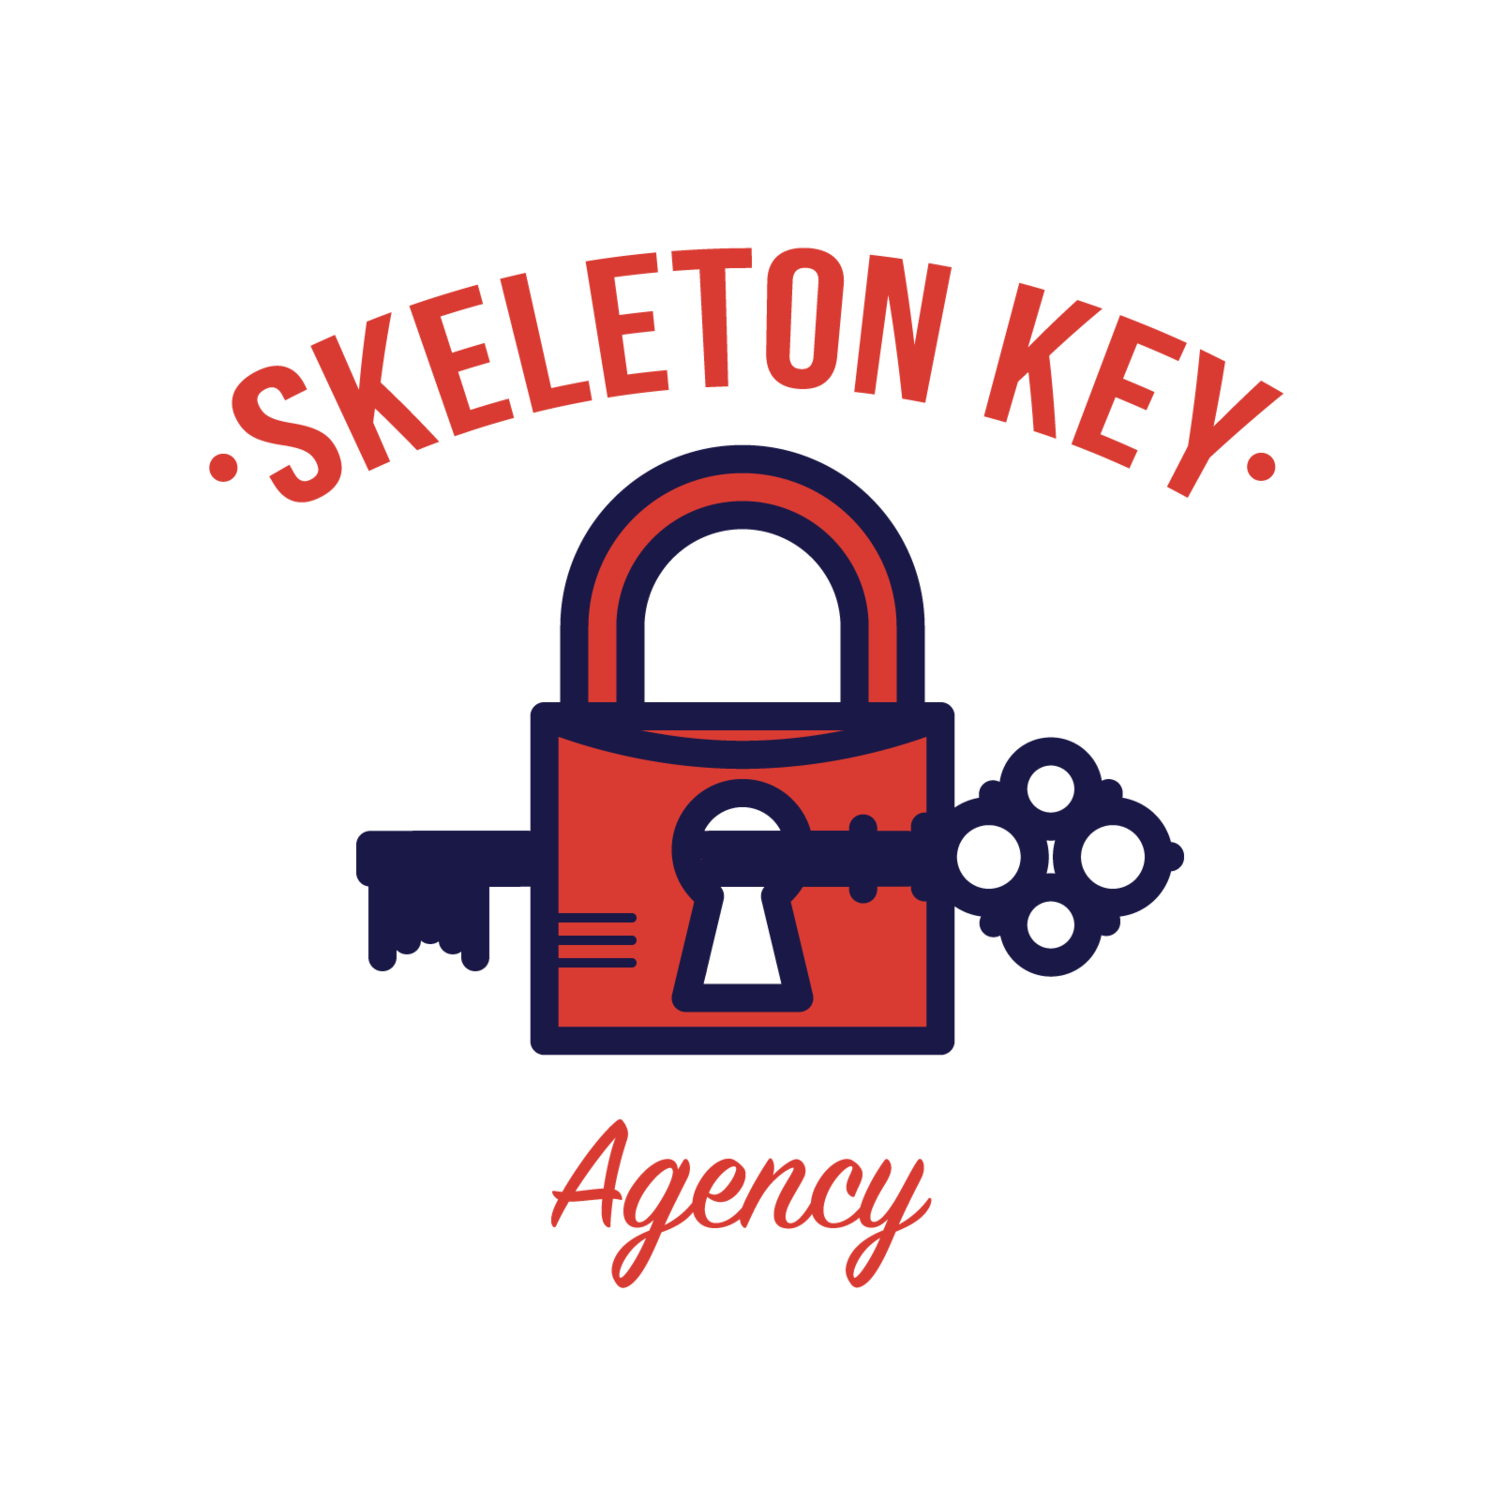 Skeleton Key Agency